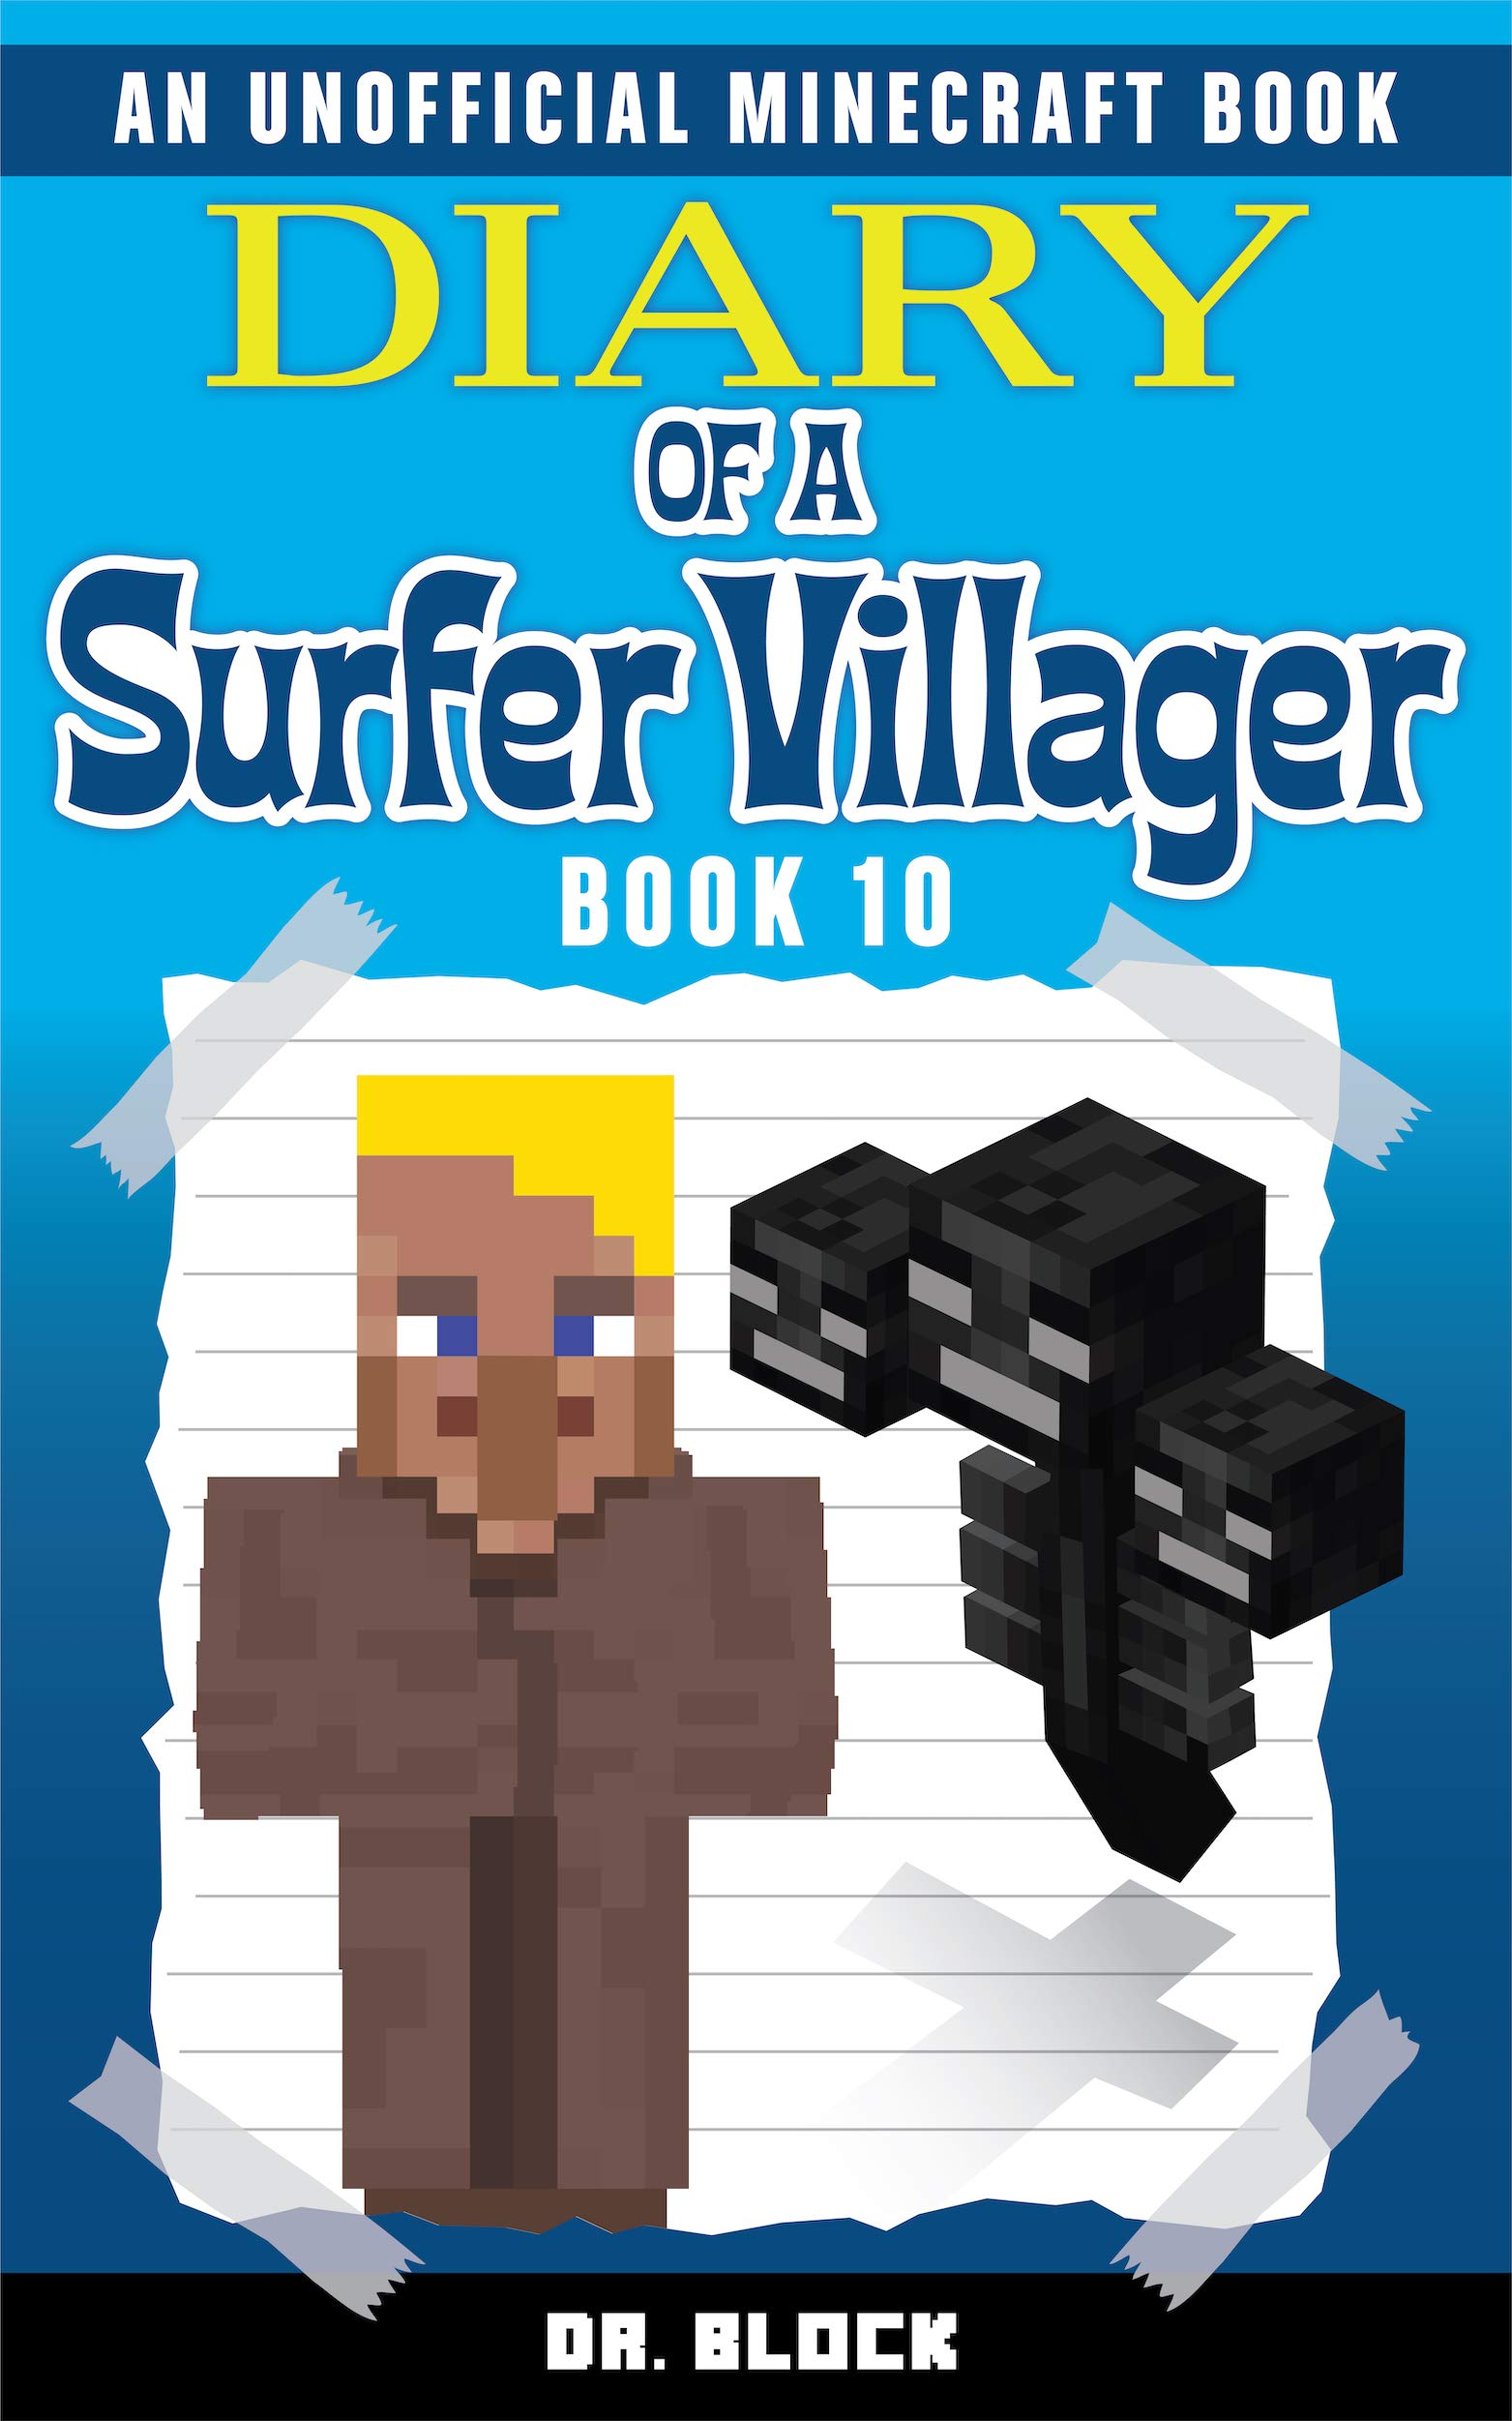 Diary Of A Surfer Villager  Book 10   An Unofficial Minecraft Book For Kids   English Edition